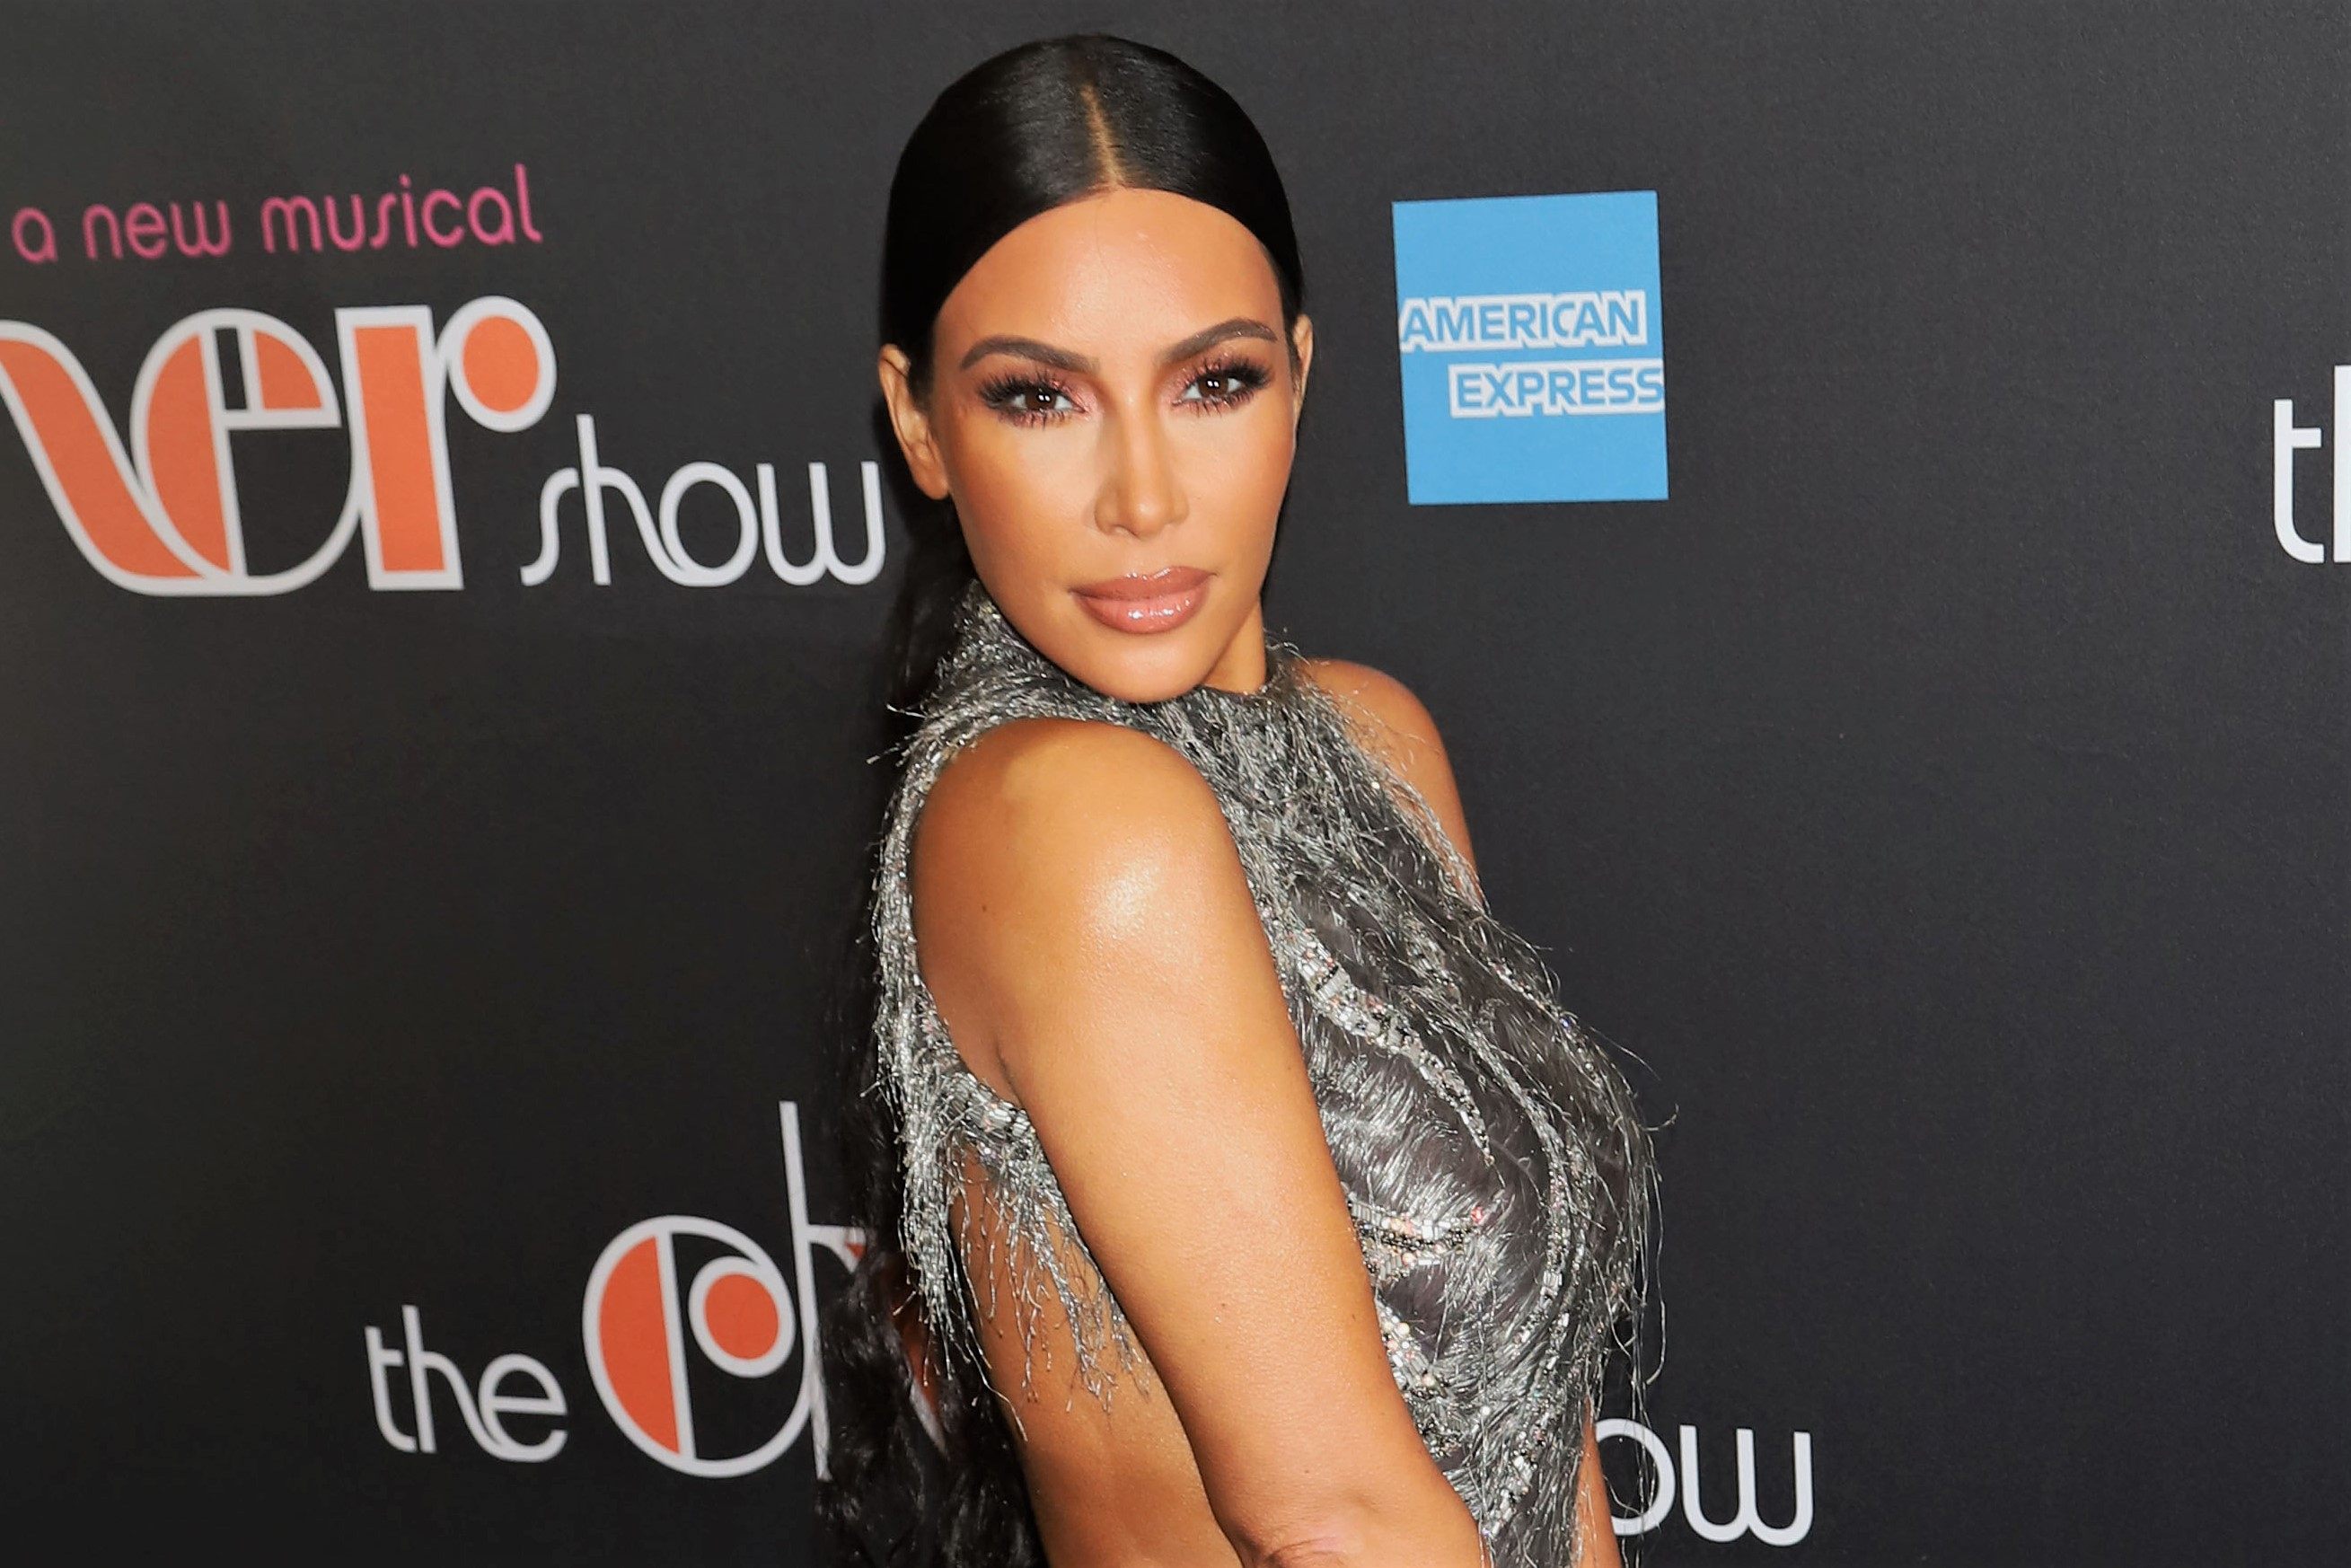 Kim Kardashian's Doctors Wouldn't Let Her Do IVF Again After Her Pregnancy Complications